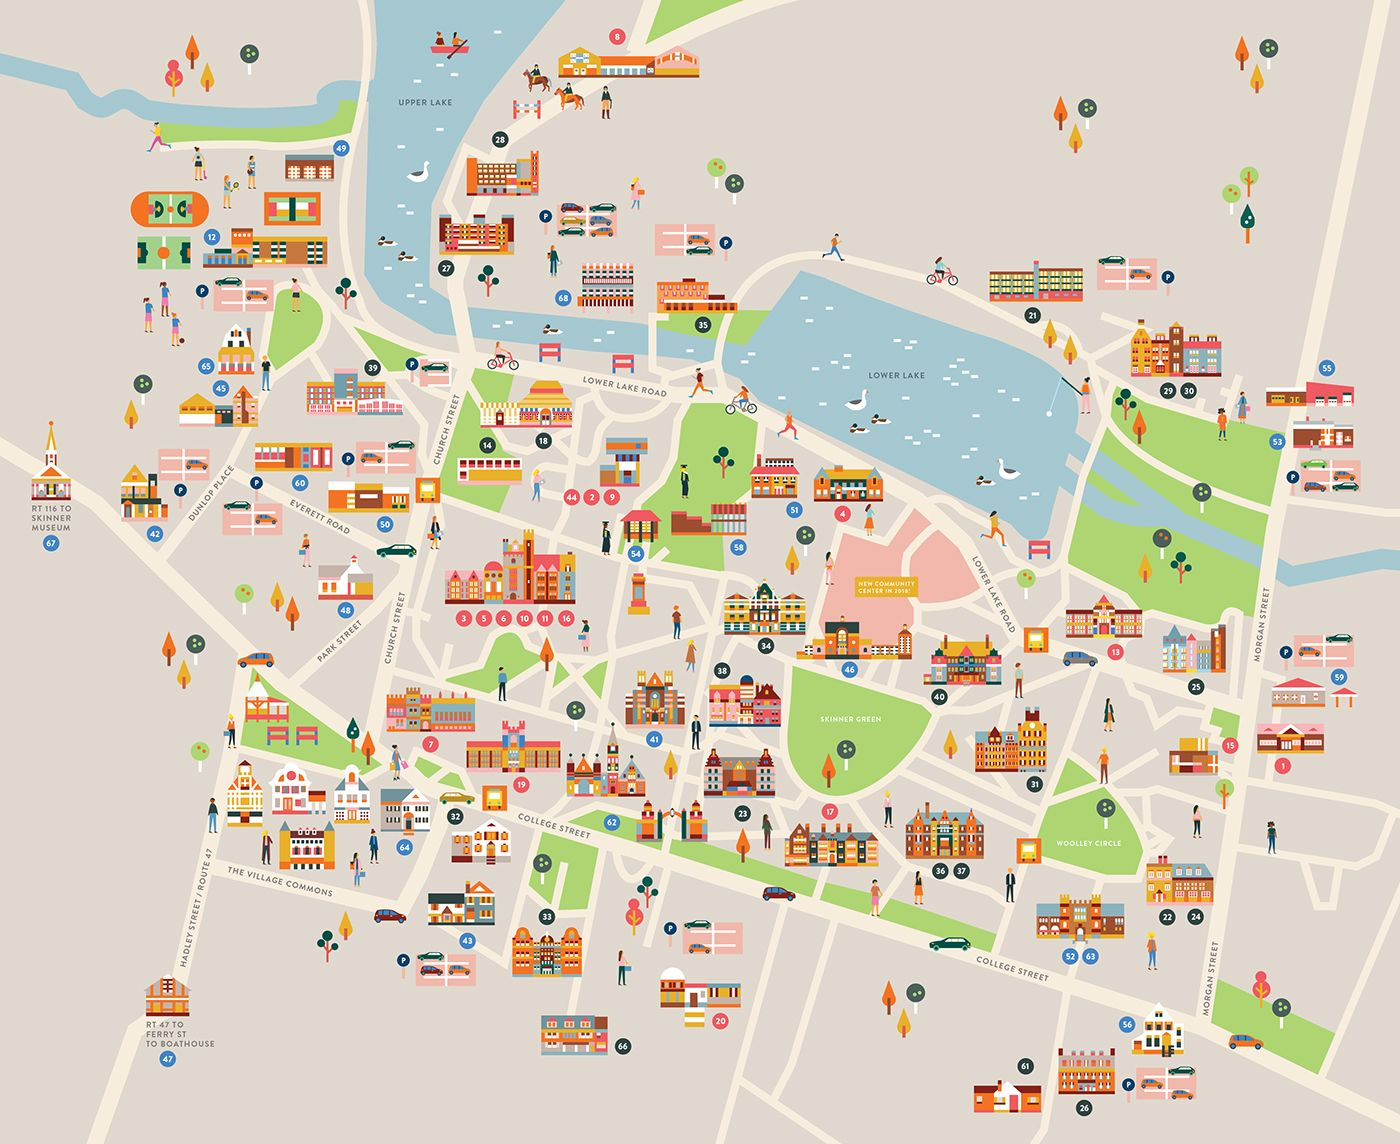 simmons college campus map. mount holyoke college campus map on behance simmons t